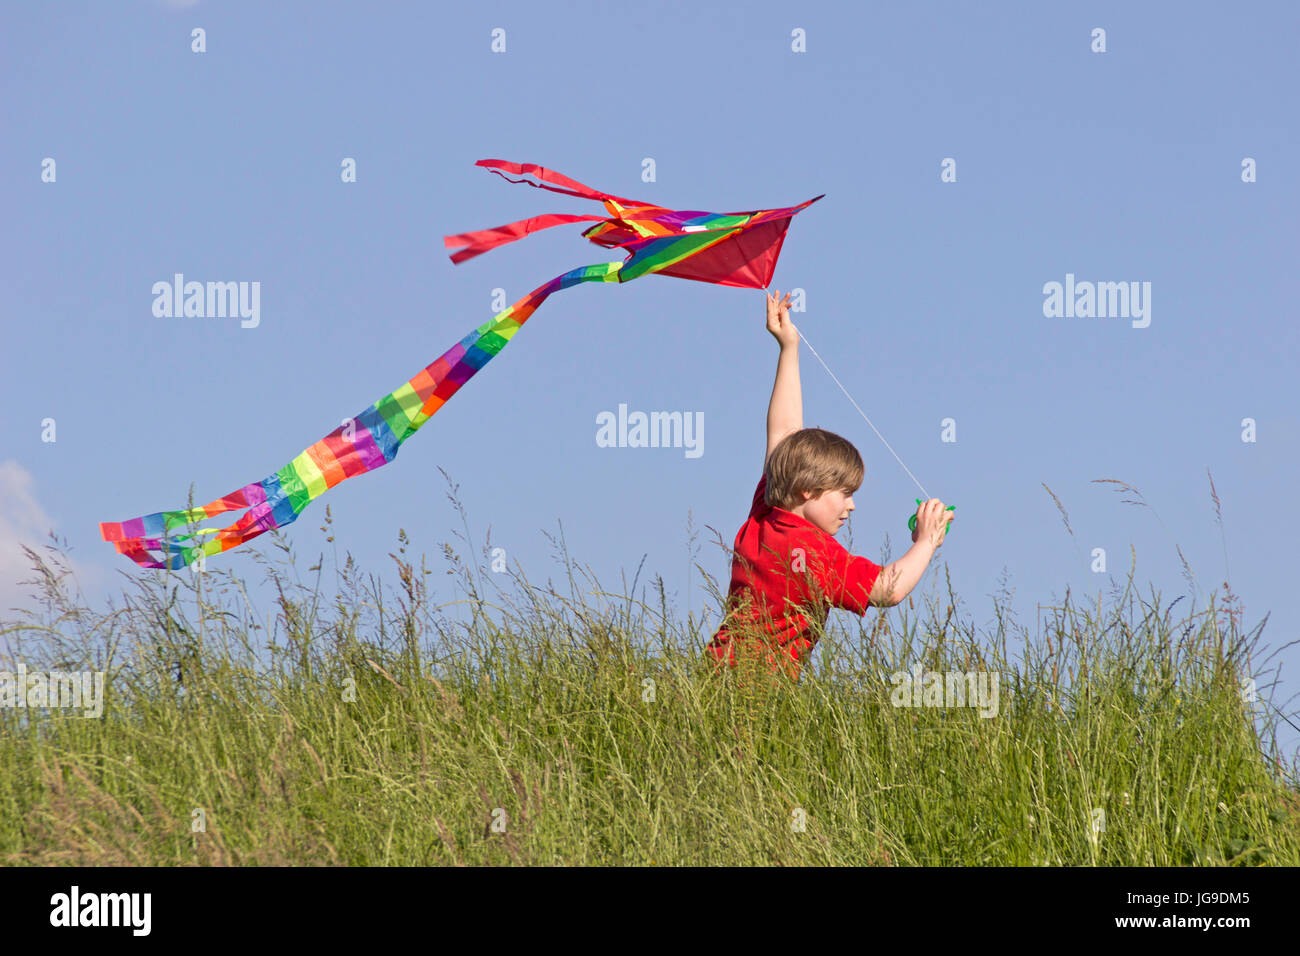 young boy flying kite, Bleckede, Lower Saxony, Germany - Stock Image